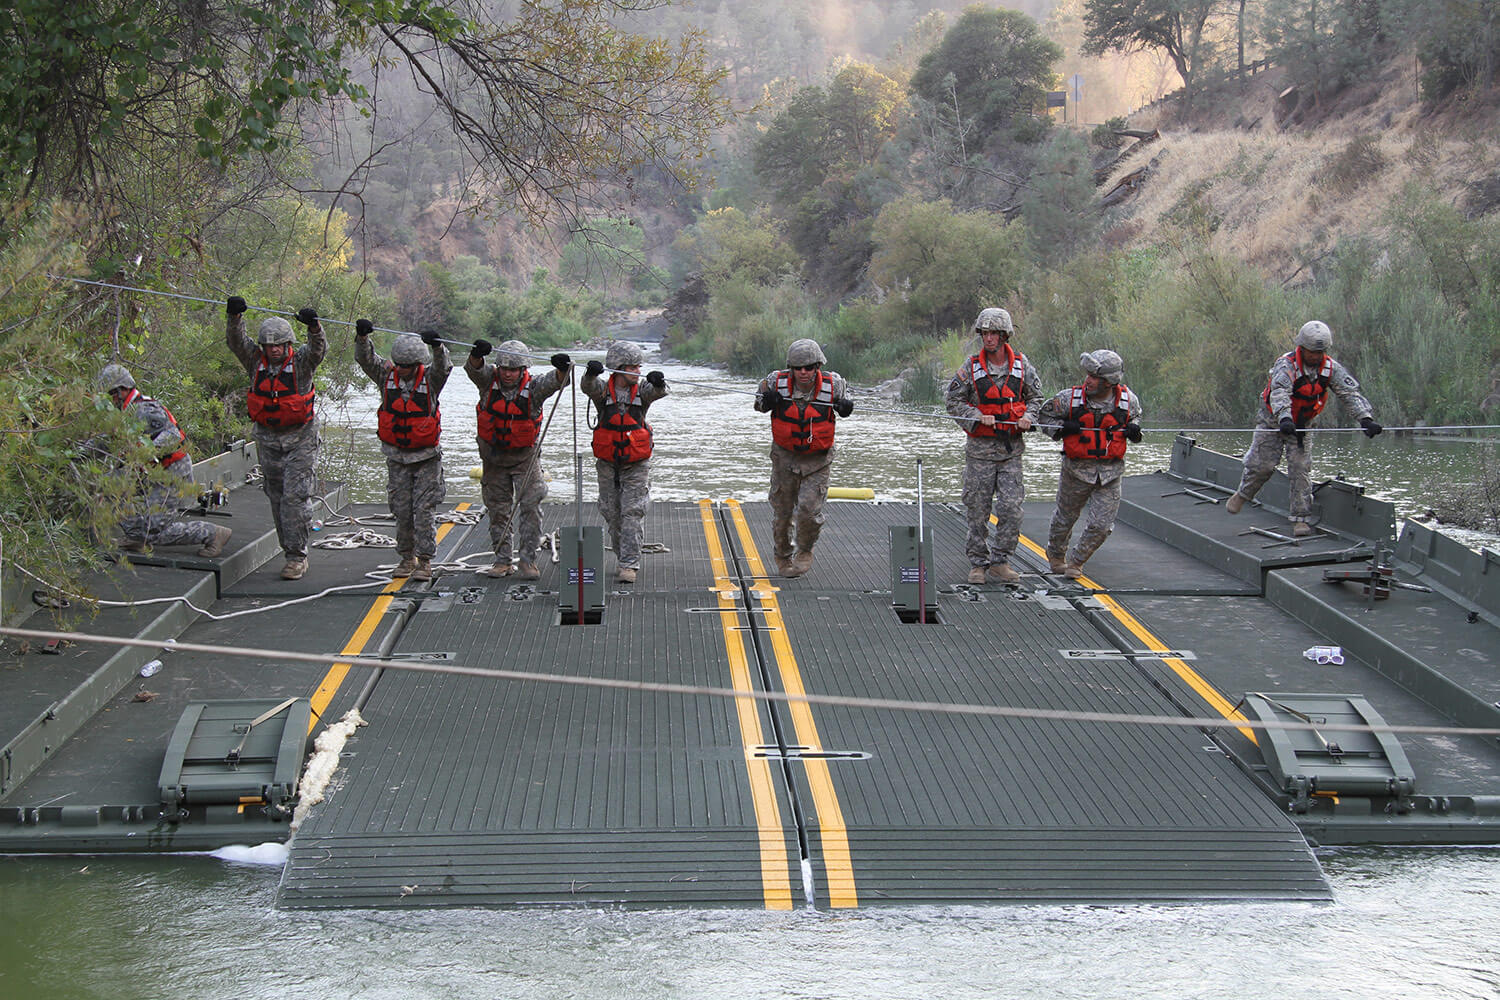 A launch and retrieve team from the 132nd Multirole Bridge Company (MRBC), 579th Engineer Battalion, 49th Military Police Brigade, California Army National Guard, uses a steel guideline to move a ramp-and-bay over Cache Creek River in Cache Creek Regional Park, Yolo County, Calif. The platforms are part of a floating bridge constructed by the MRBC to help California Department of Forestry and Fire Protection vehicles and equipment cross the river to battle wildfires. California Army National Guard photo by SSG Eddie Siguenza